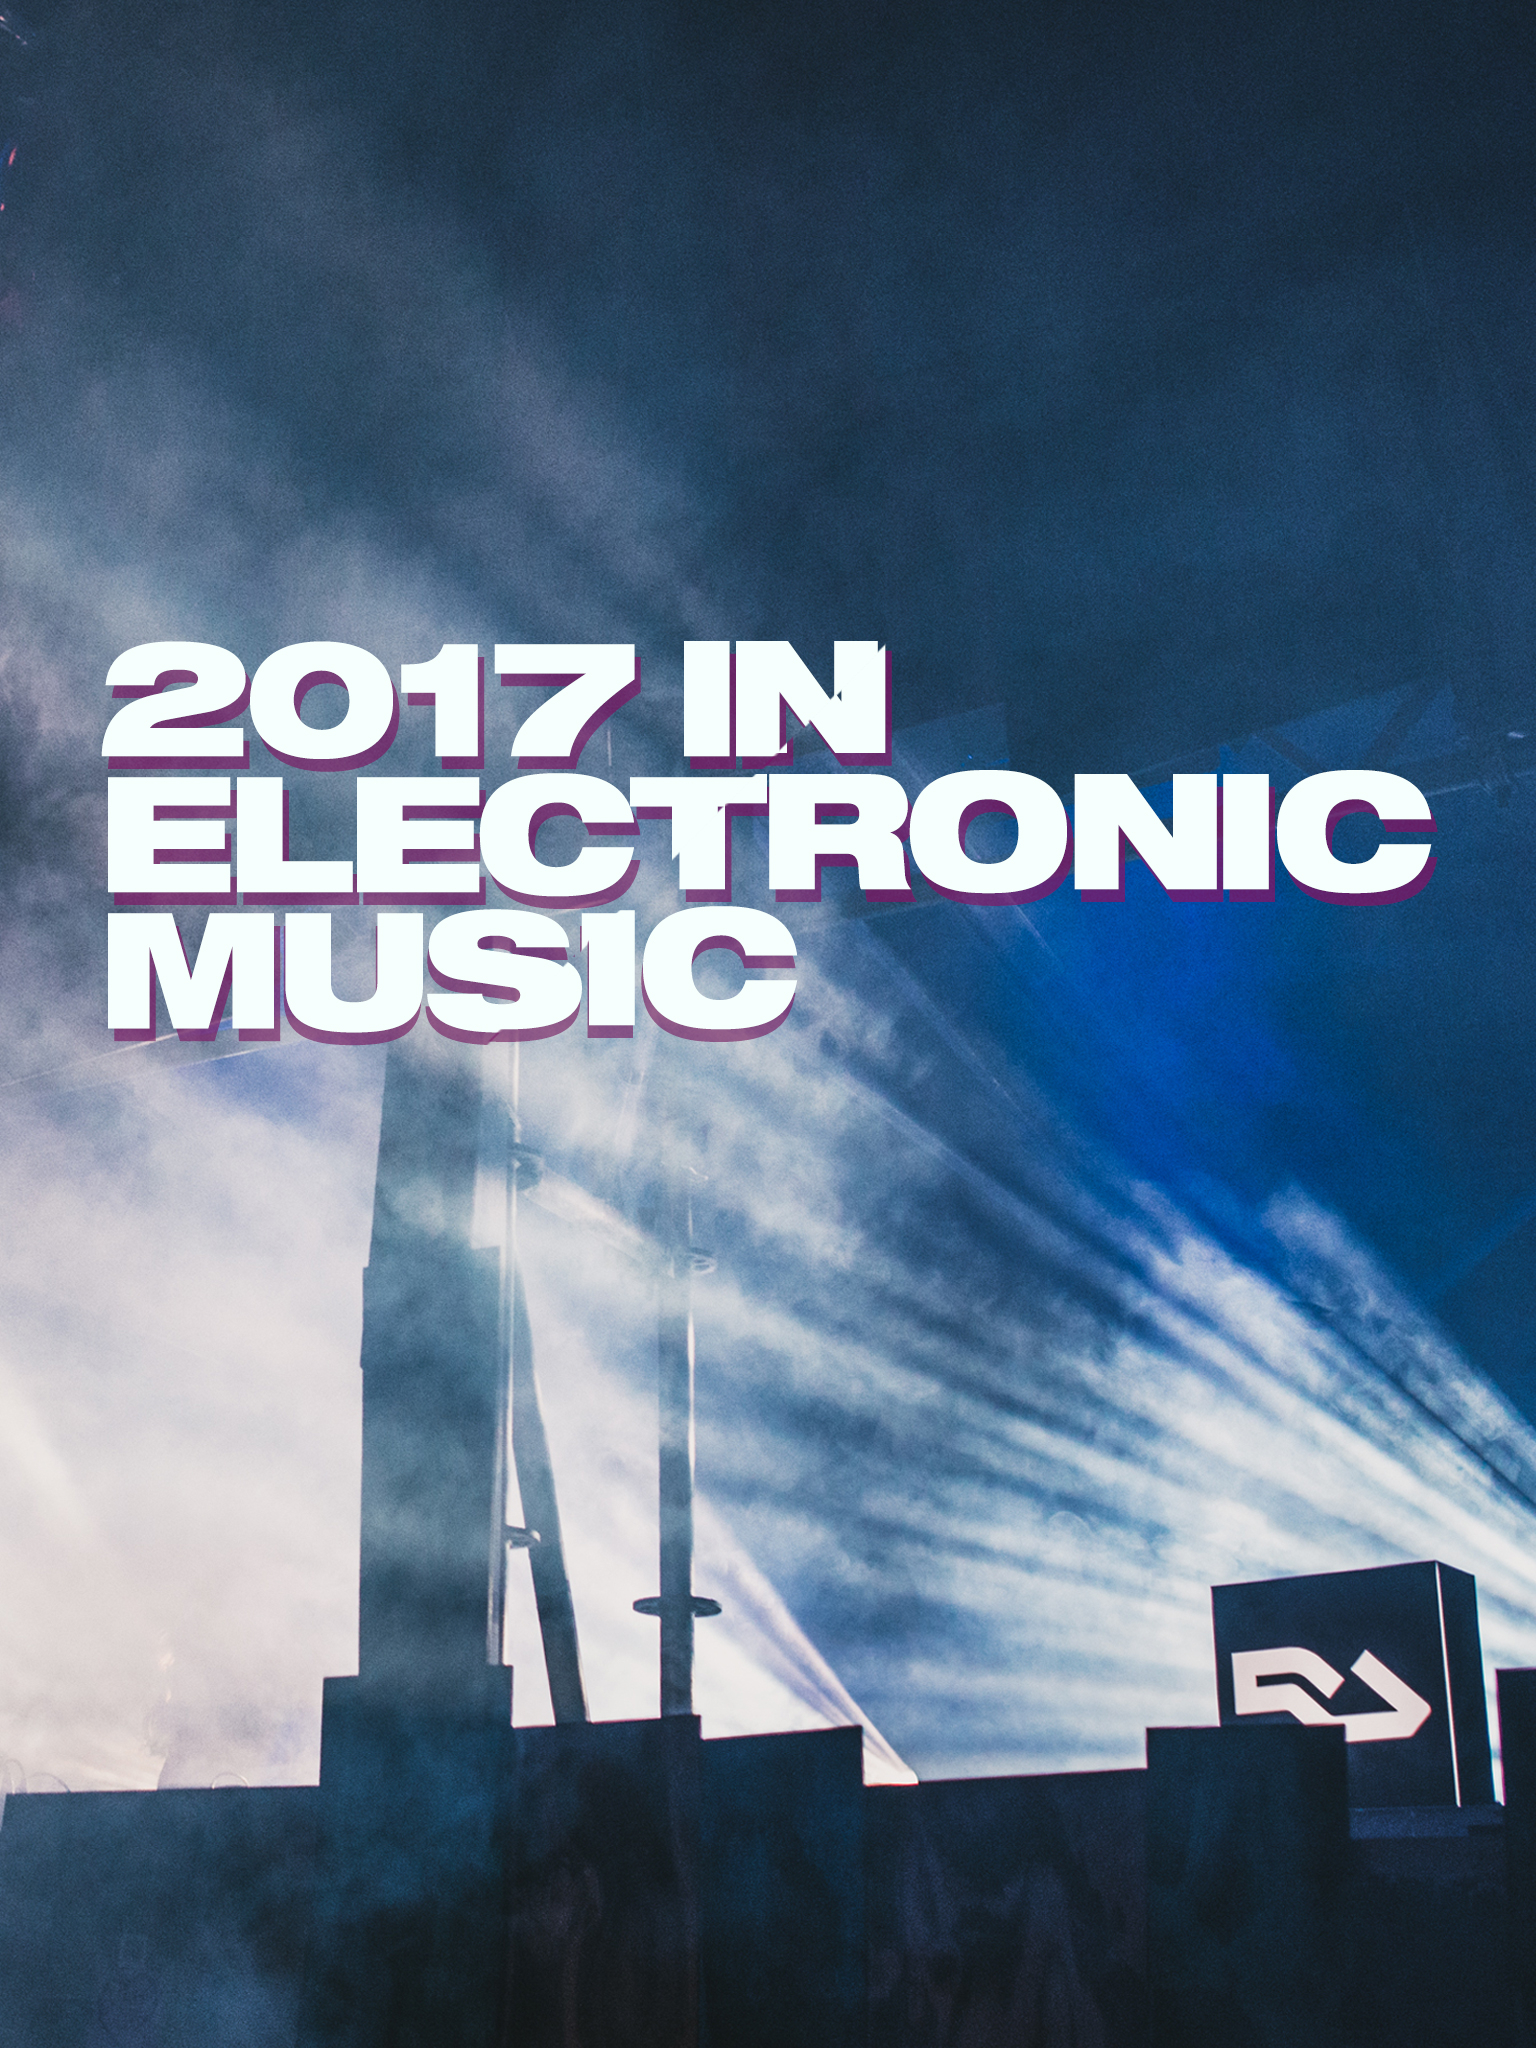 2017 in electronic music